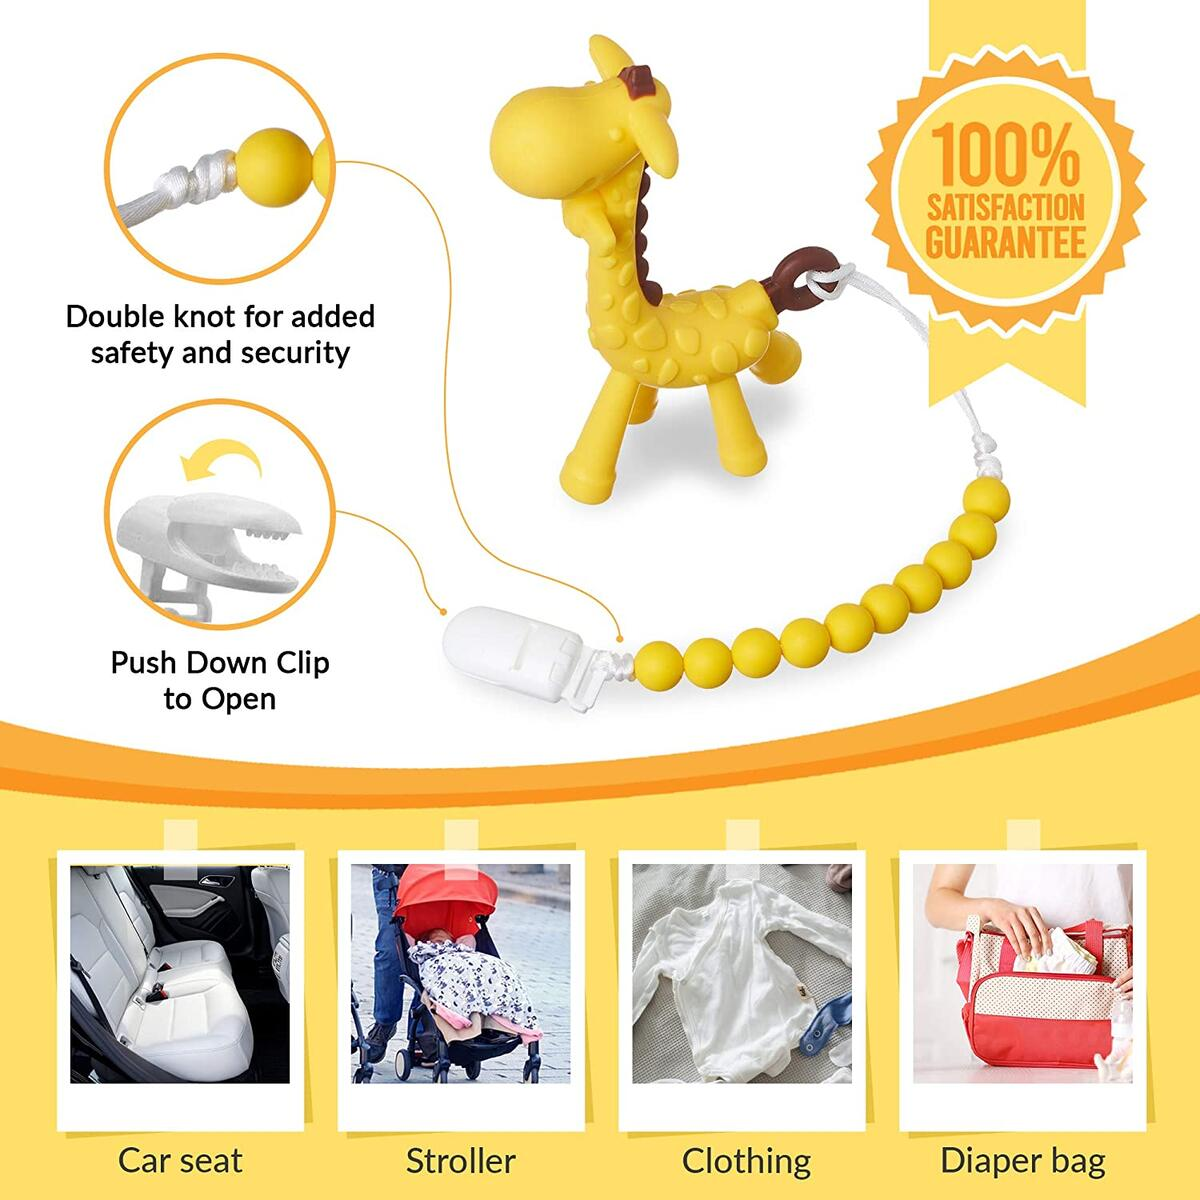 New LiaBebe Food Grade Baby Giraffe Teether Set, BPA Free, Baby Chew Toys Ideal for 0+ M Babies, Infants and Toddlers Perfect Baby Shower & Welcome Baby Gift for Boys and Girls (Yellow & Pink)…